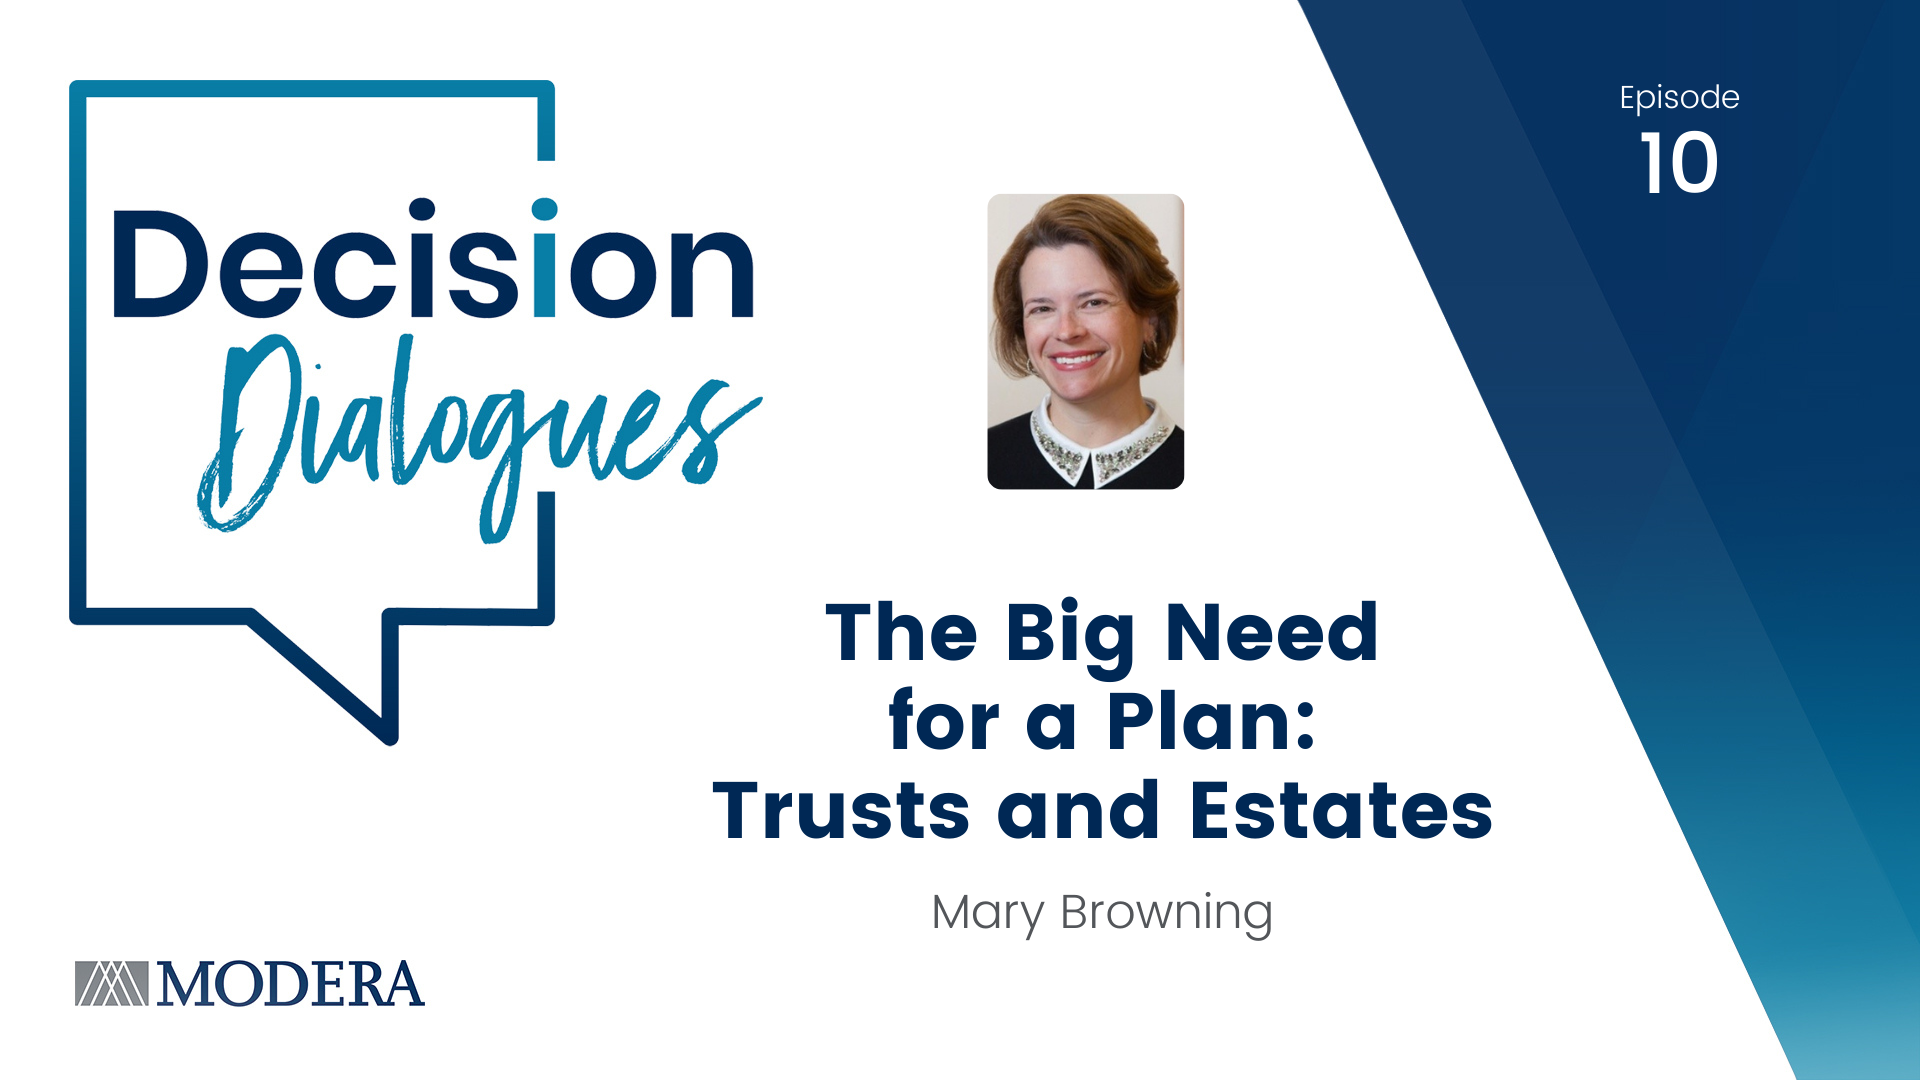 Decision Dialogues Episode 10 - Mary Browning